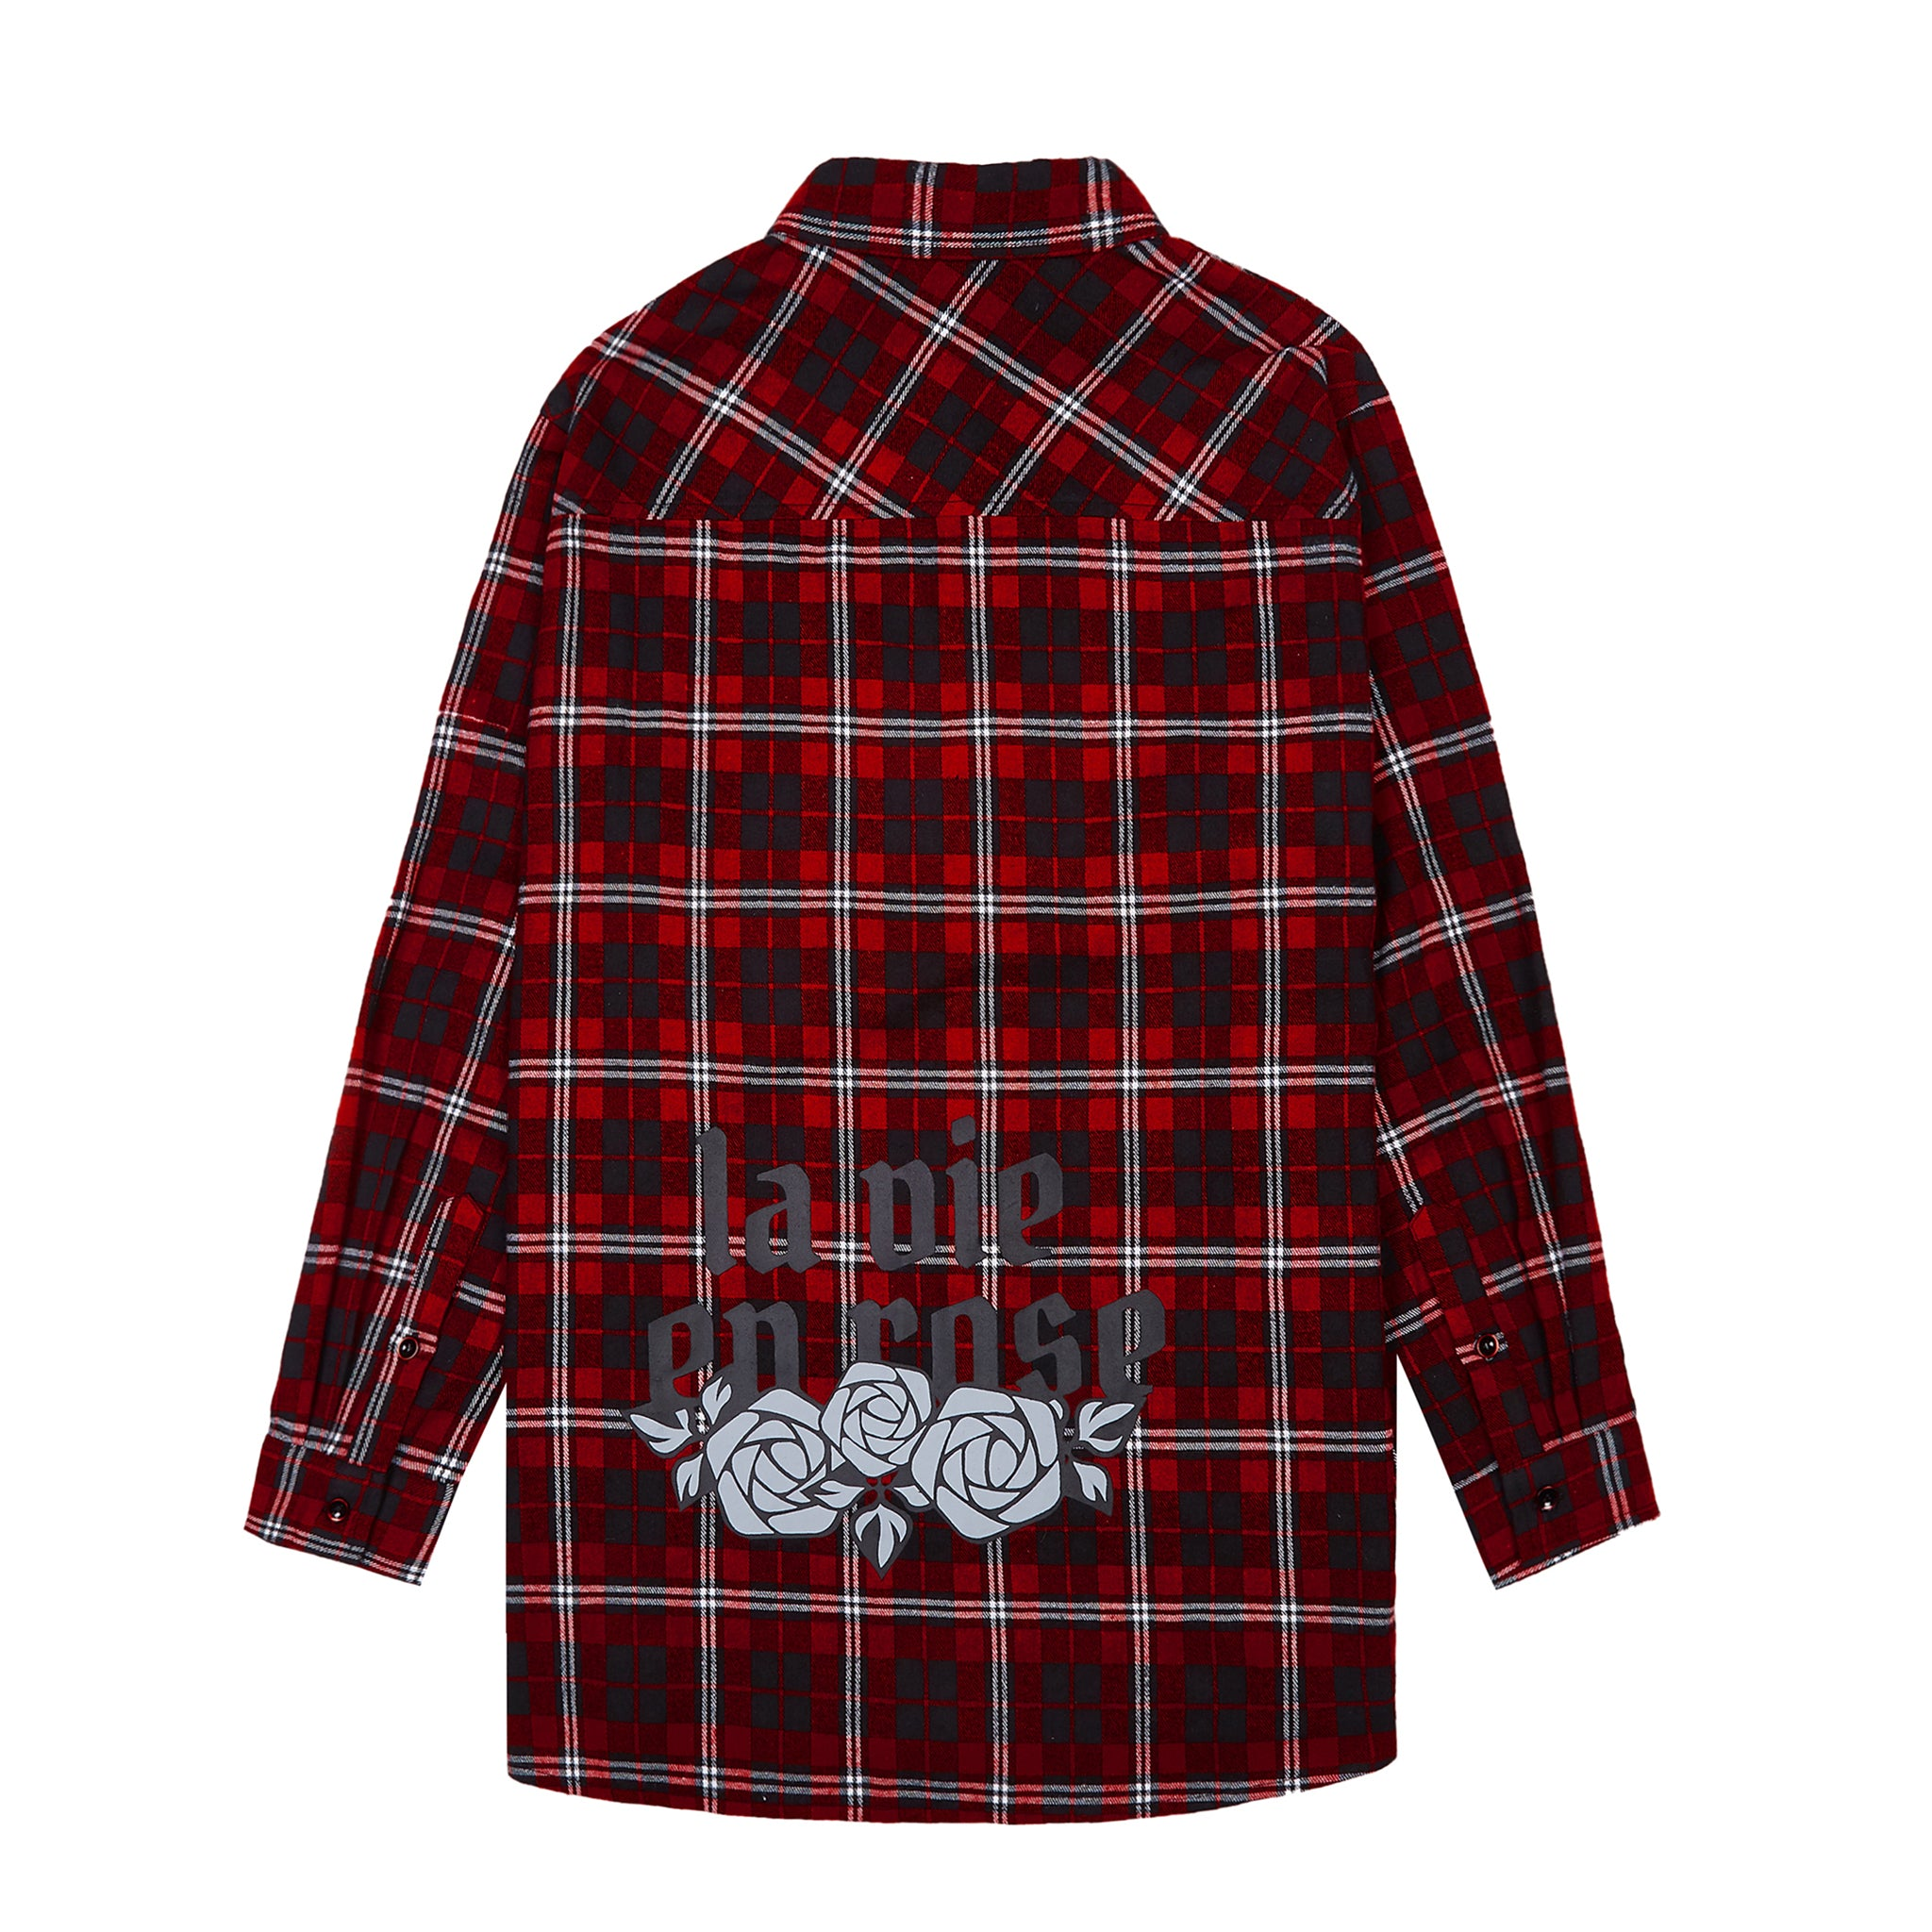 La Vie en Rose Check Shirt - Red